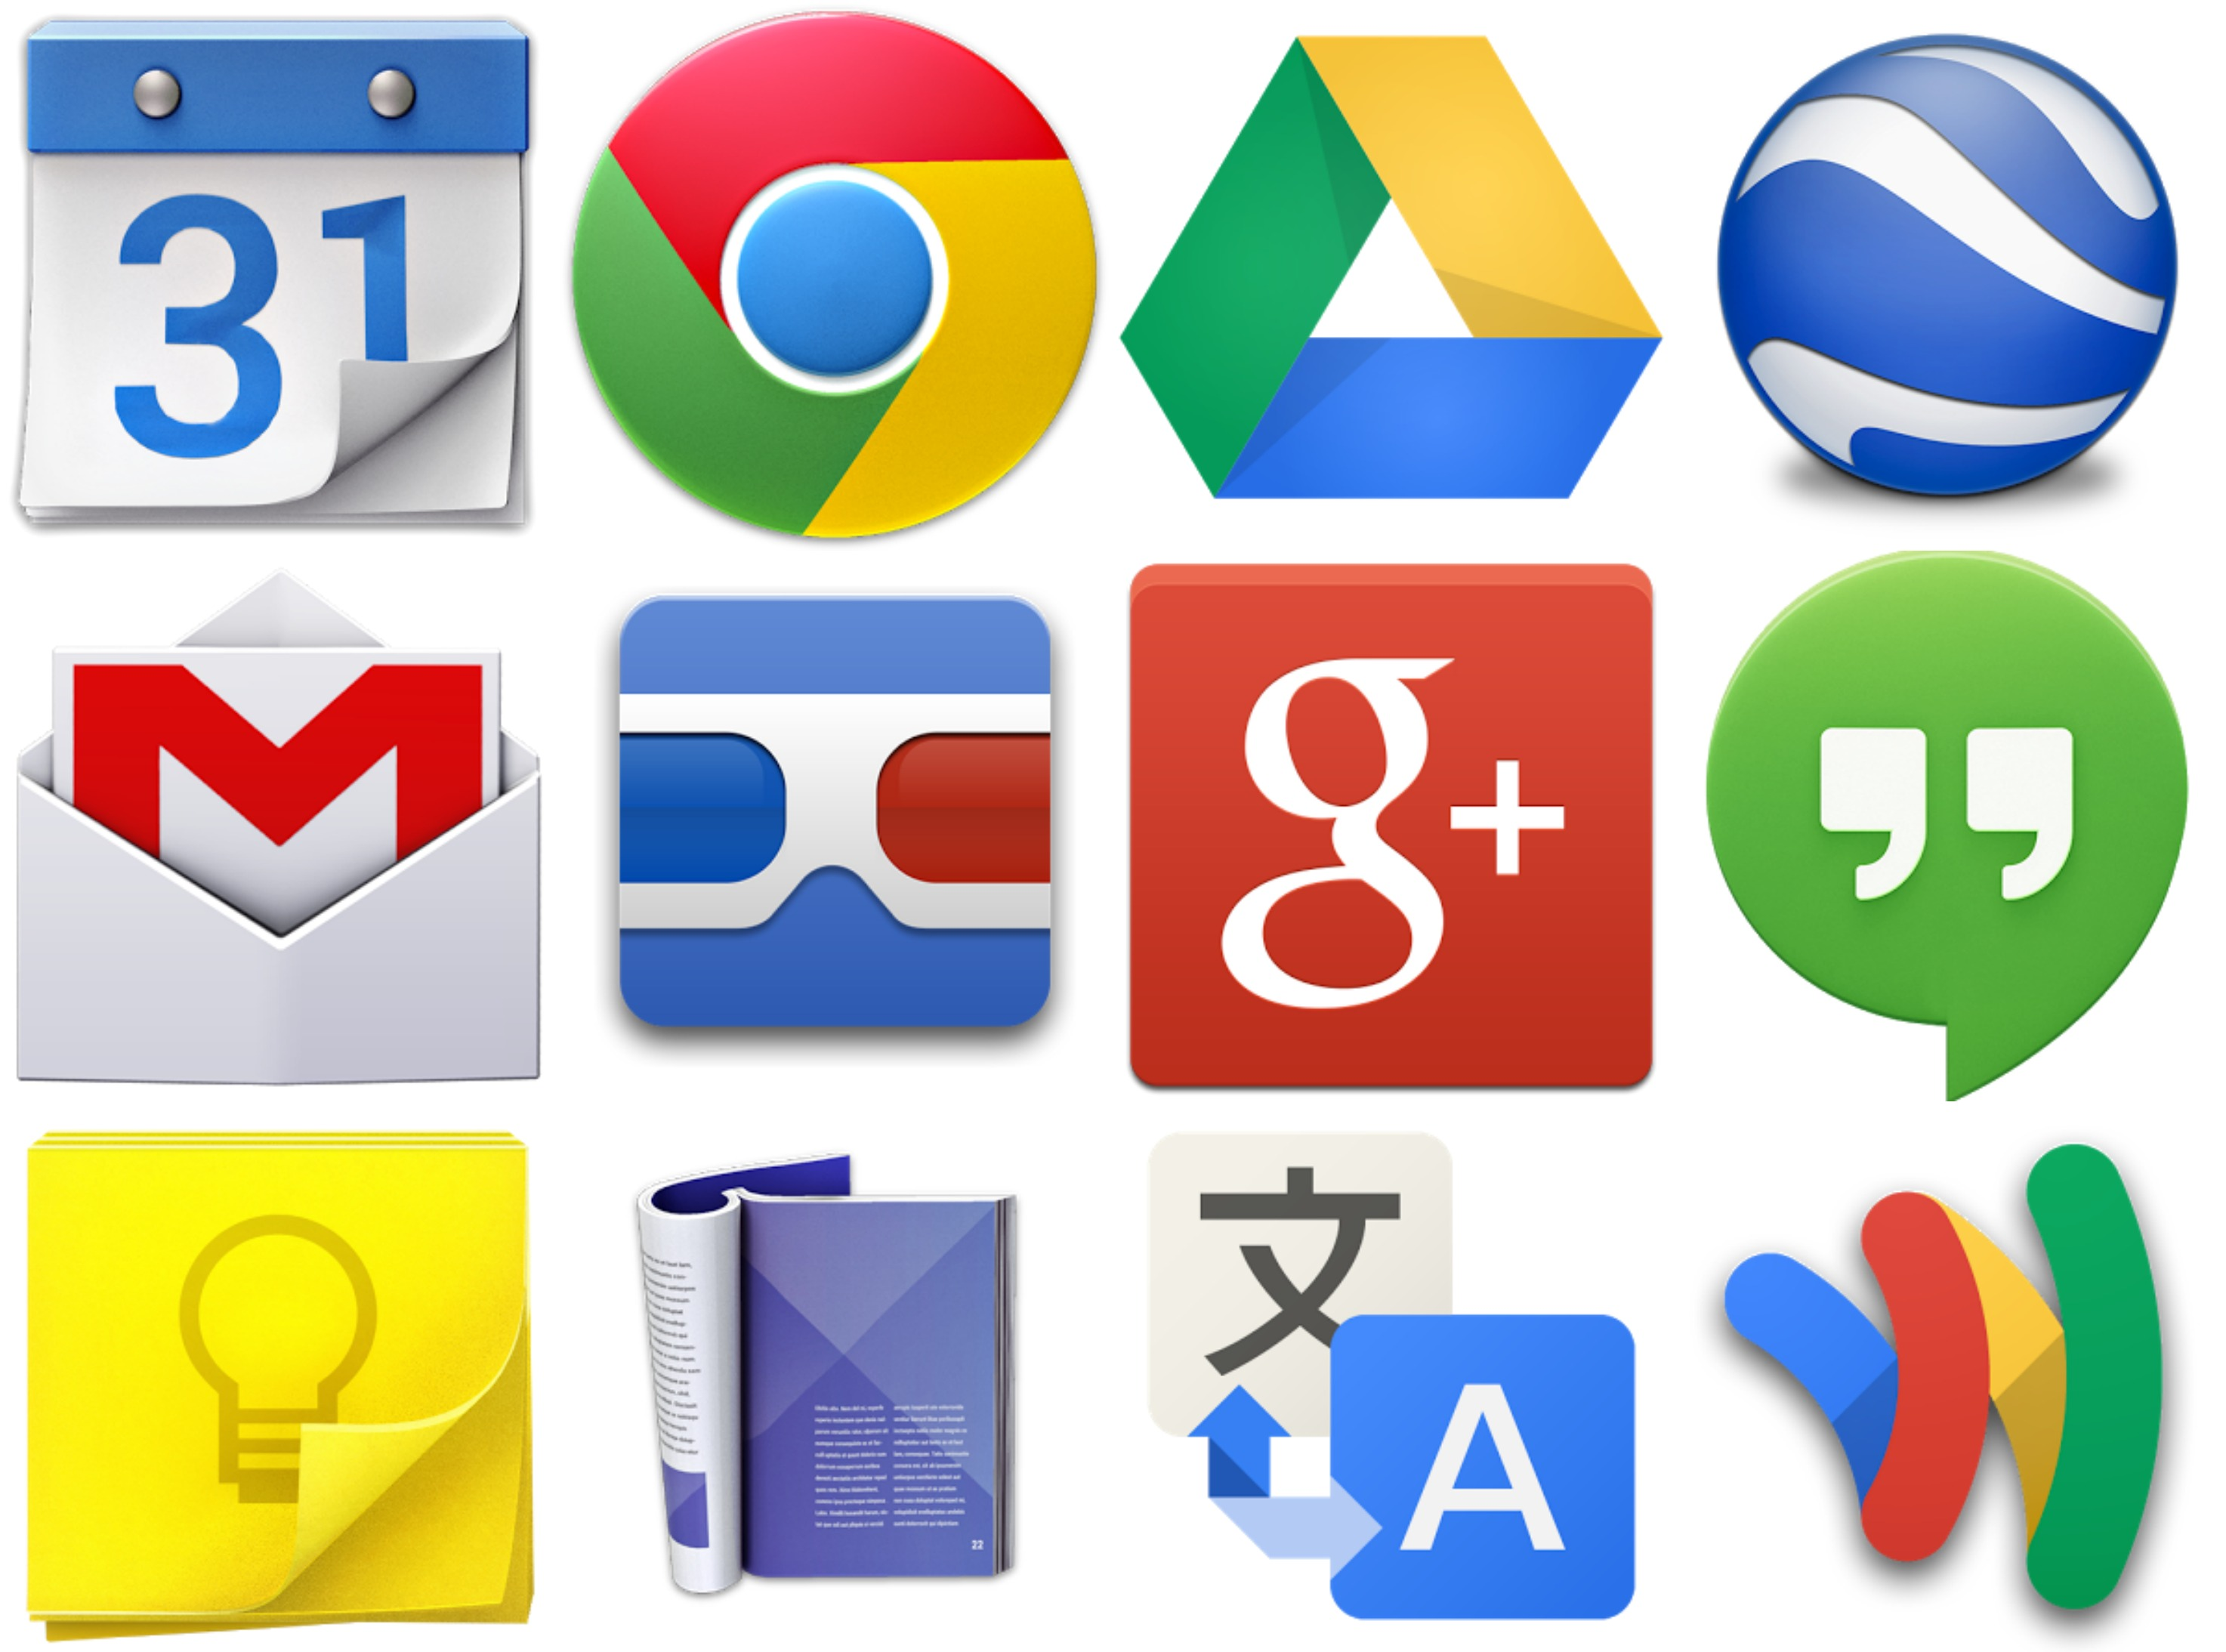 Google-apps-updated-Oct-29th.jpg